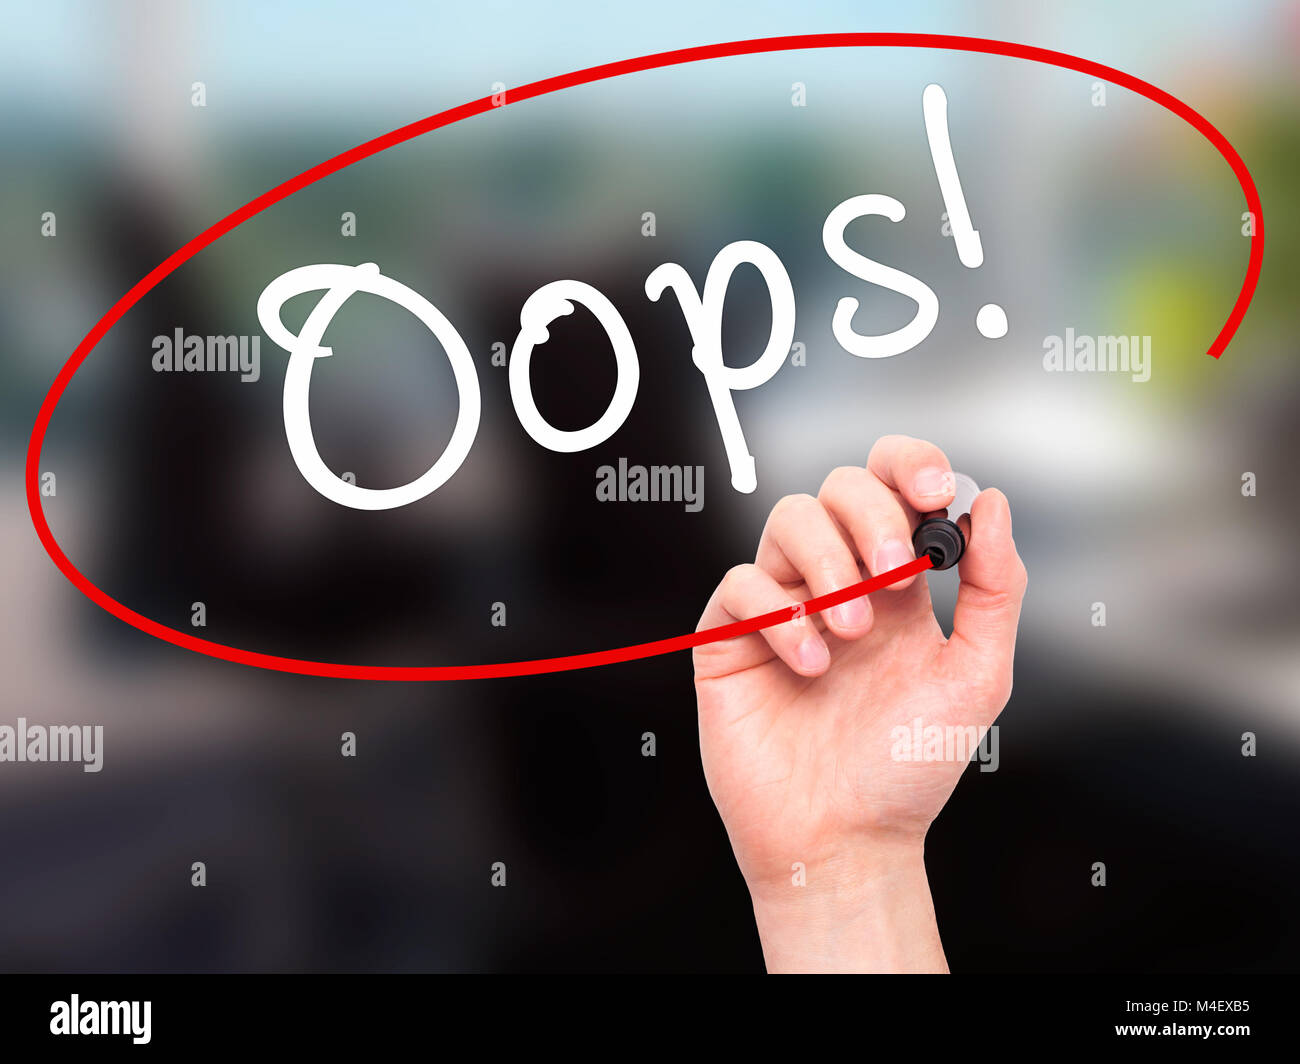 Man Hand writing Oops! with black marker on visual screen - Stock Image